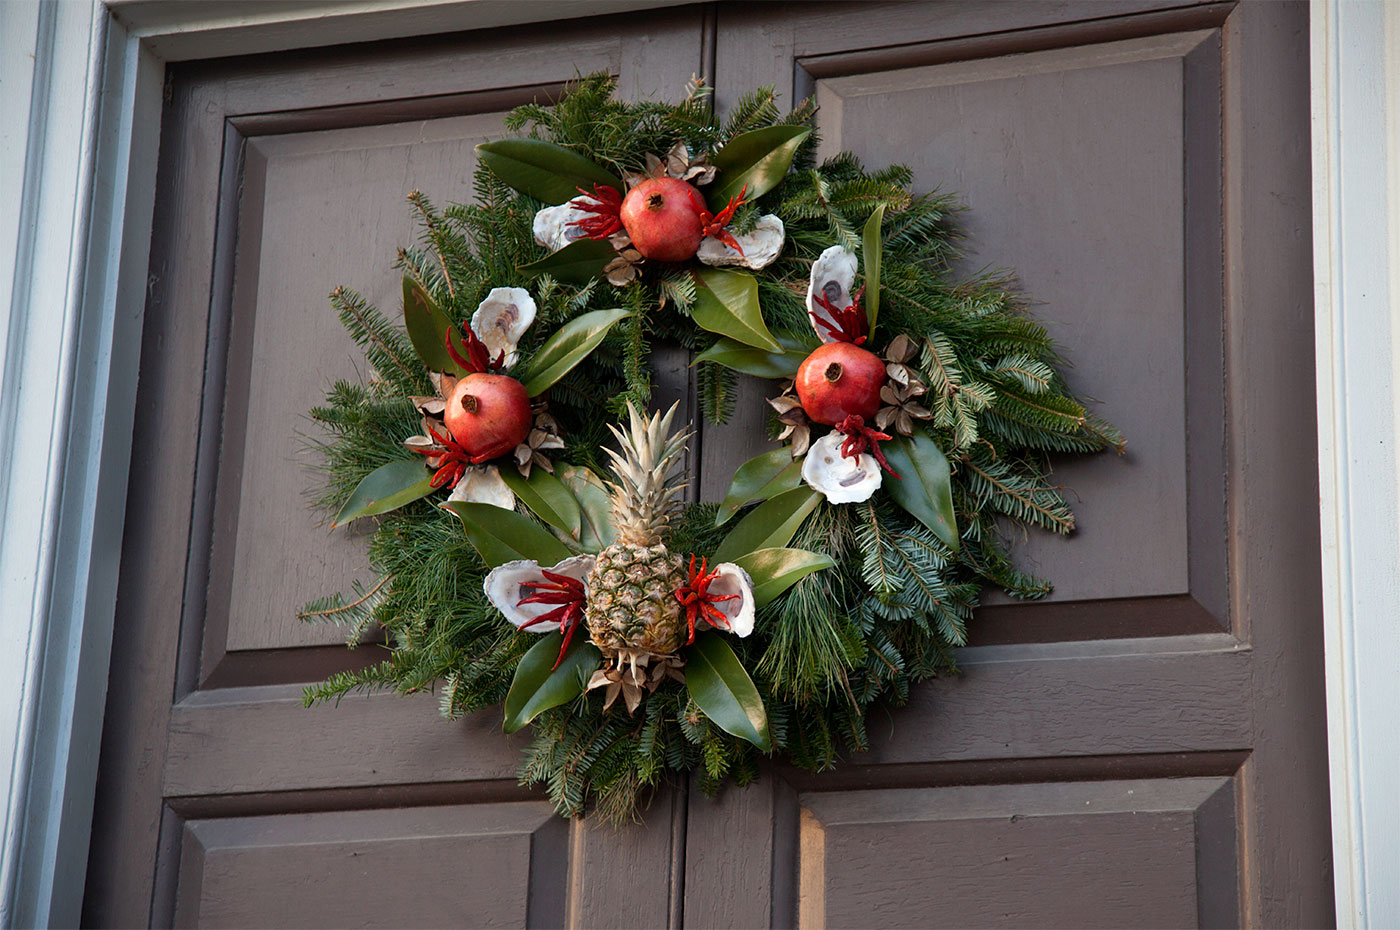 colonial williamsburg holiday wreath 2013 - Colonial Williamsburg Christmas Decorations